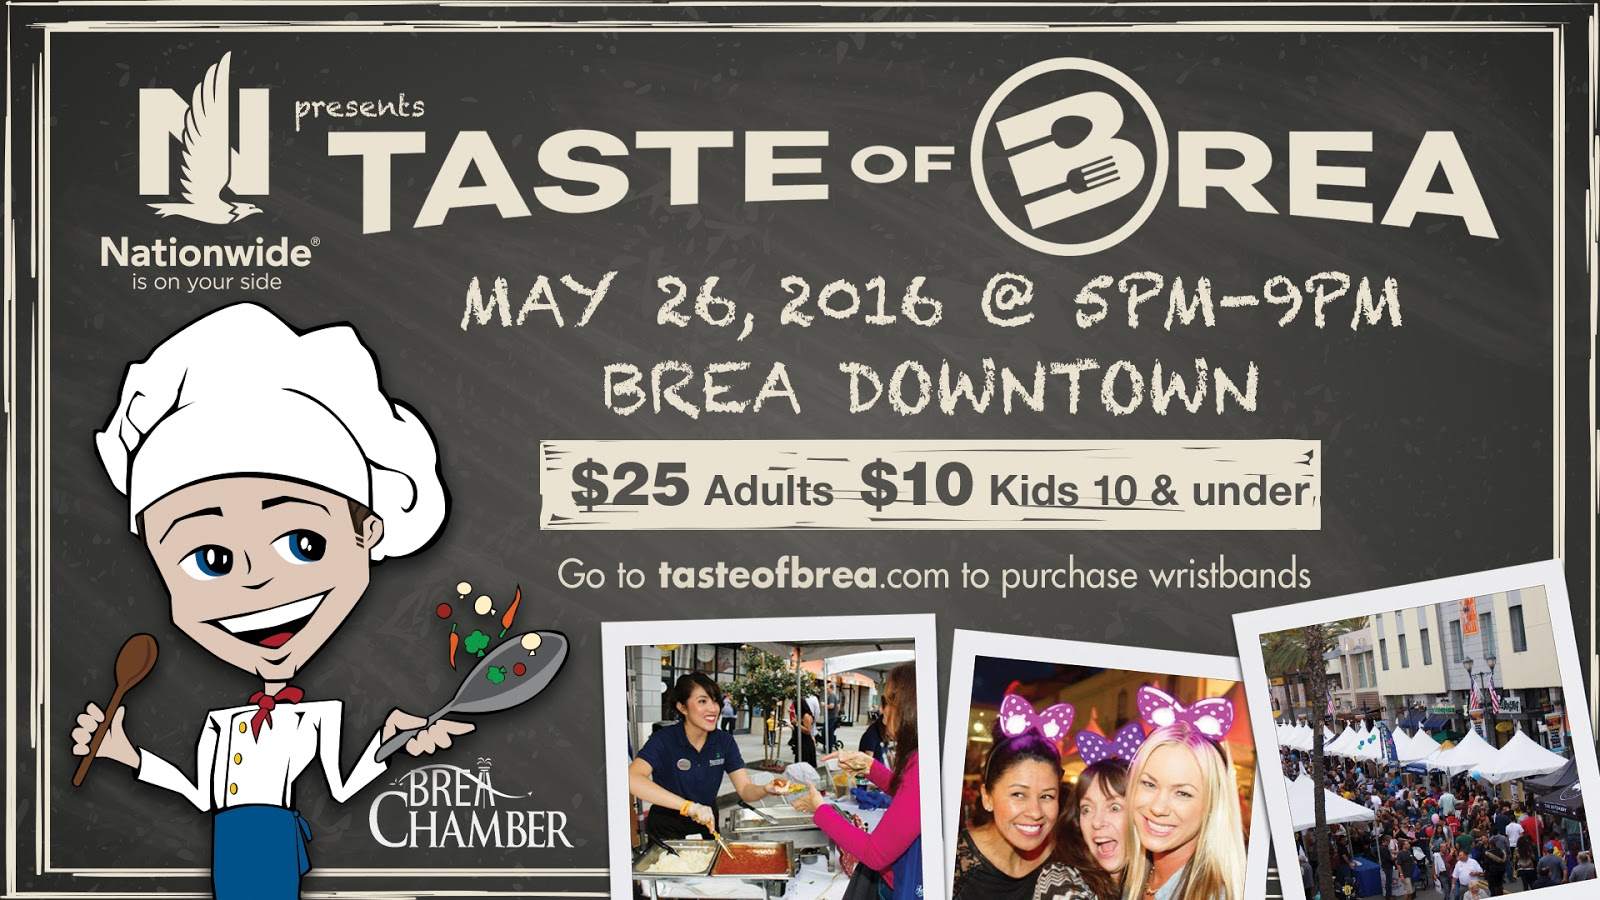 I AM SO EXCITED FOR TASTE OF BREA TONIGHT! (MAY 26)